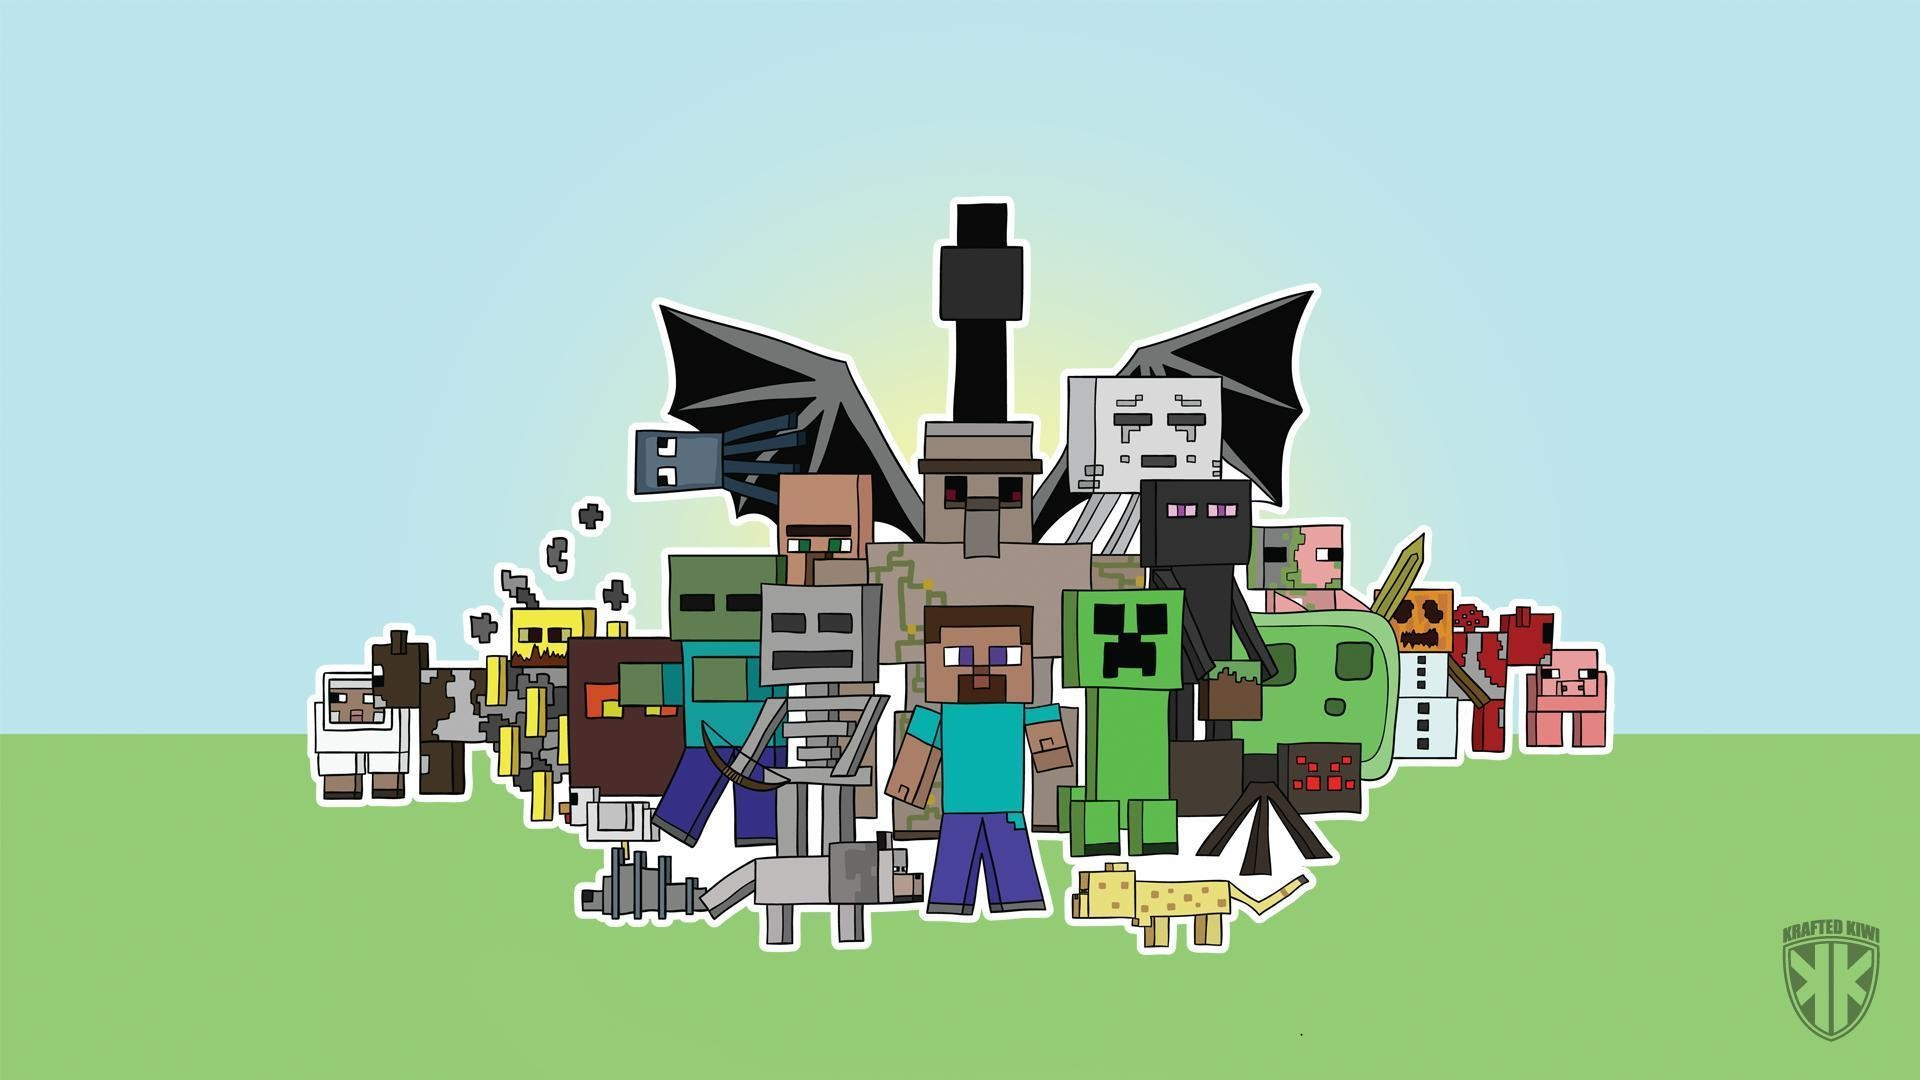 Epic Minecraft Backgrounds (72+ images)